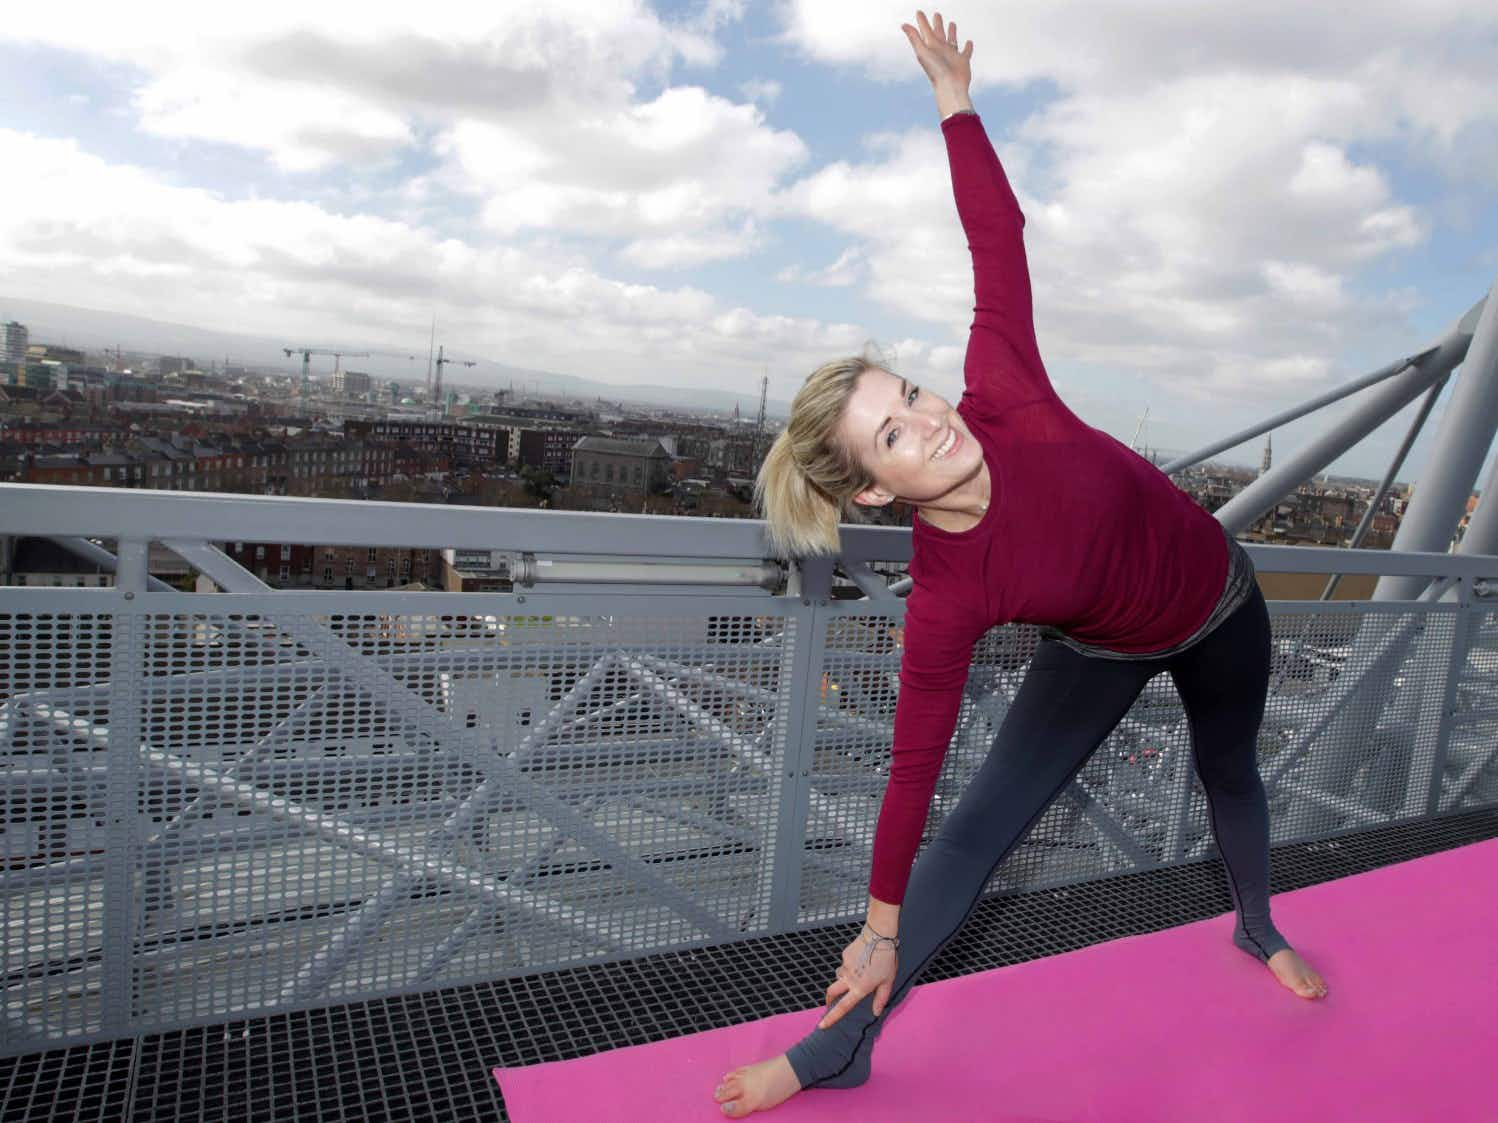 Dublin visitors can take in a yoga class on top of the city's iconic Croke Park stadium